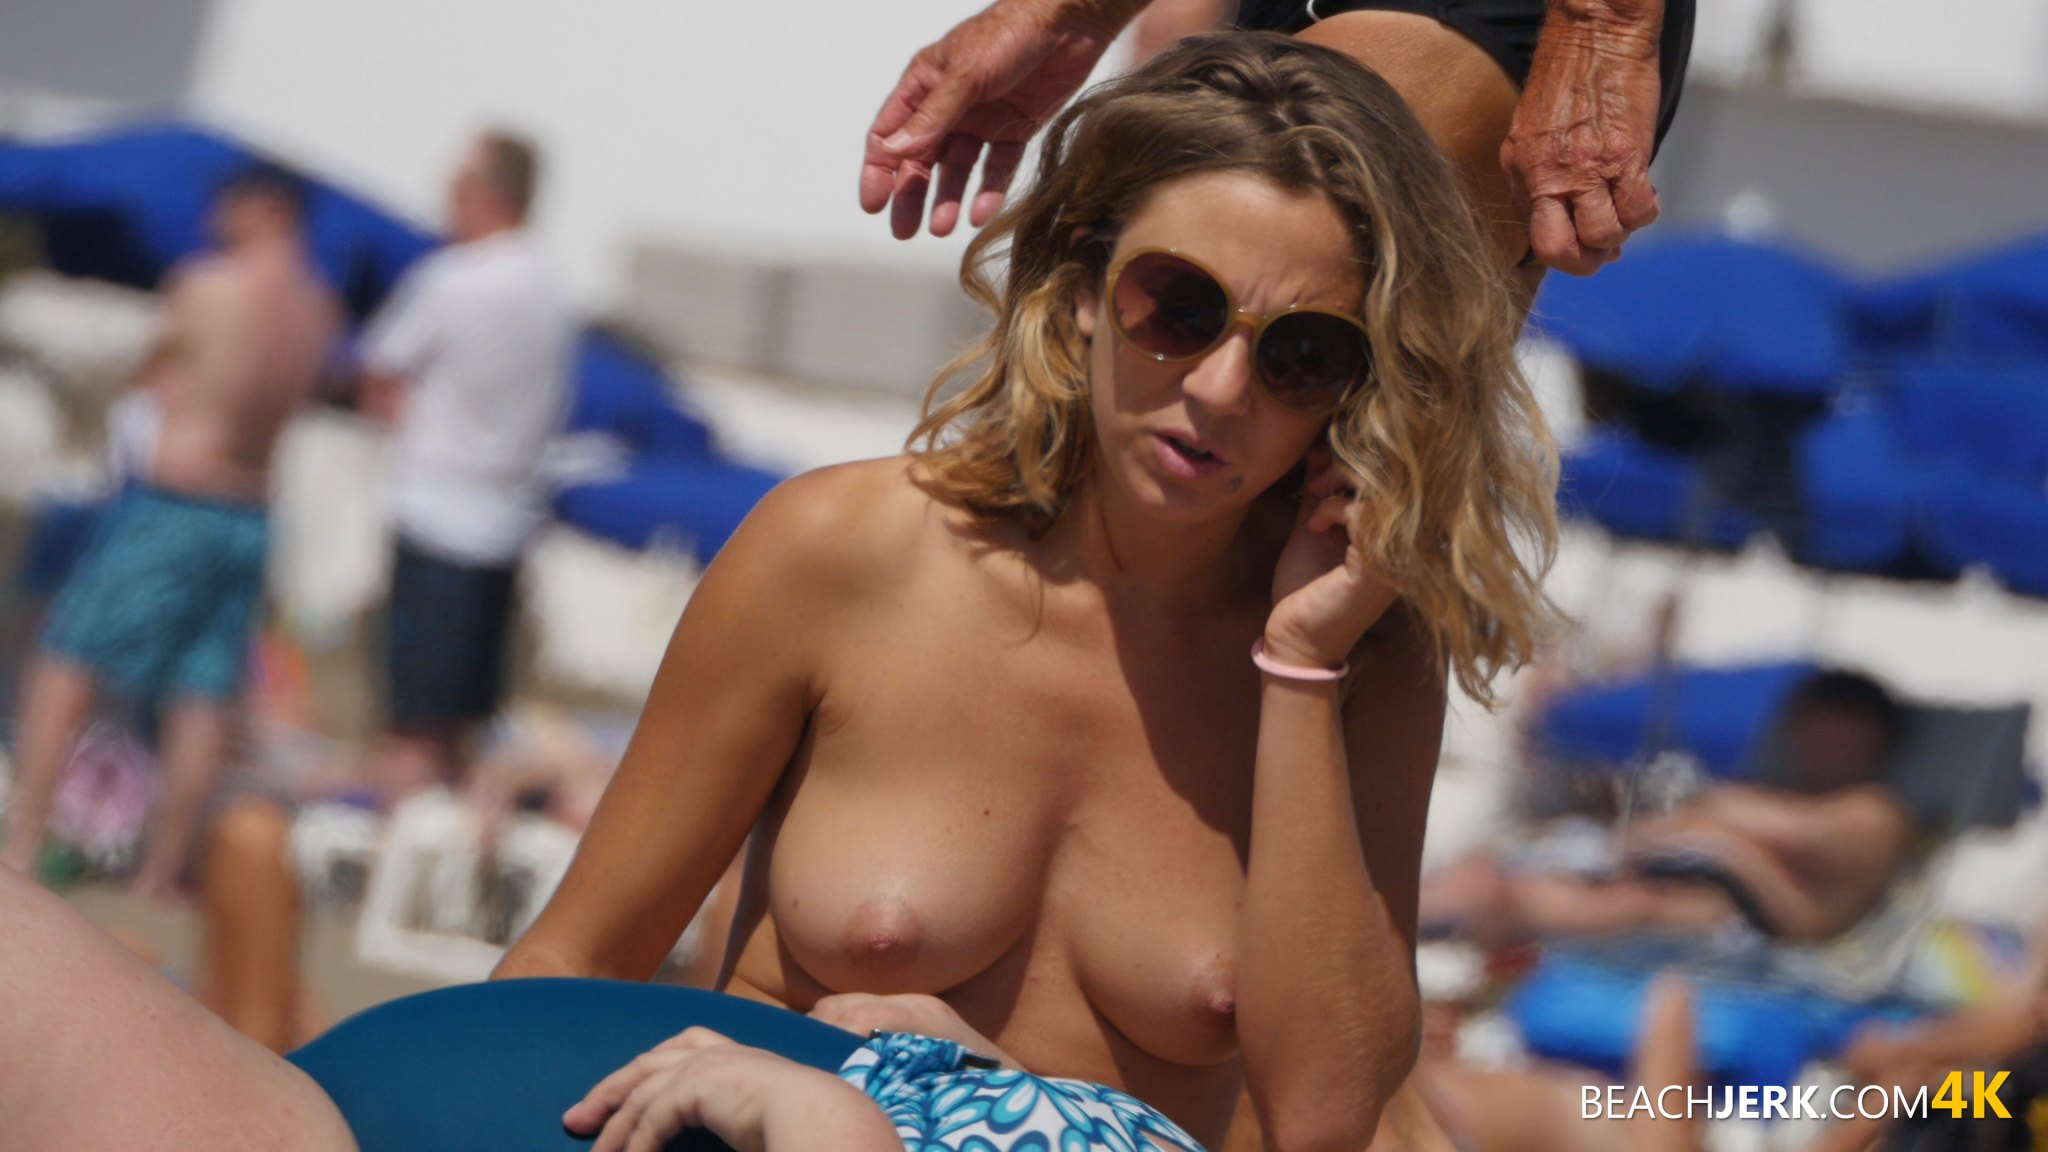 Topless beach videos #6